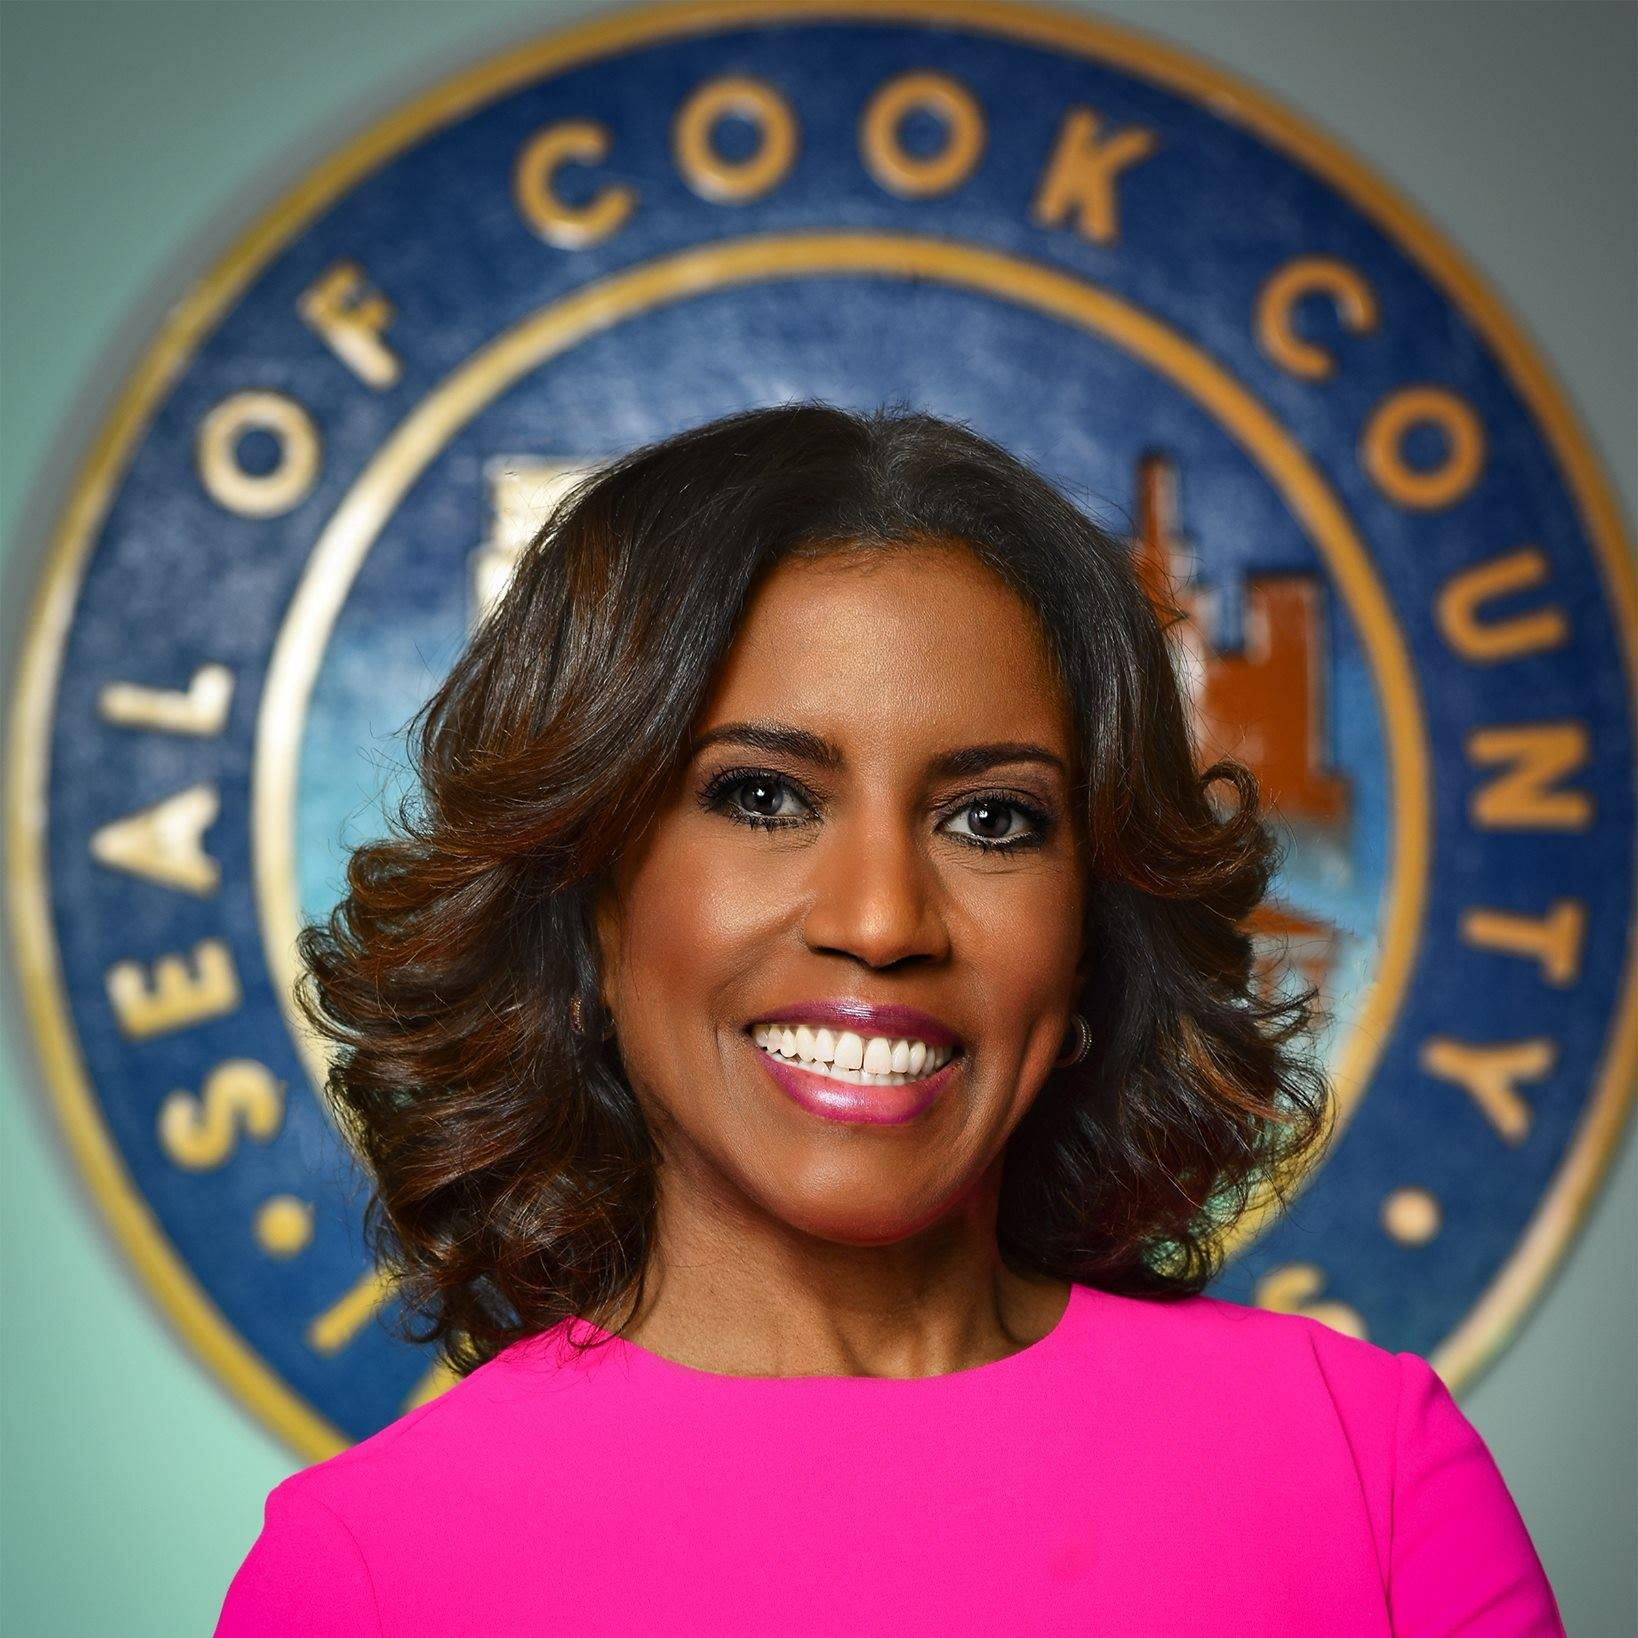 Cook County Commissioner Donna Miller